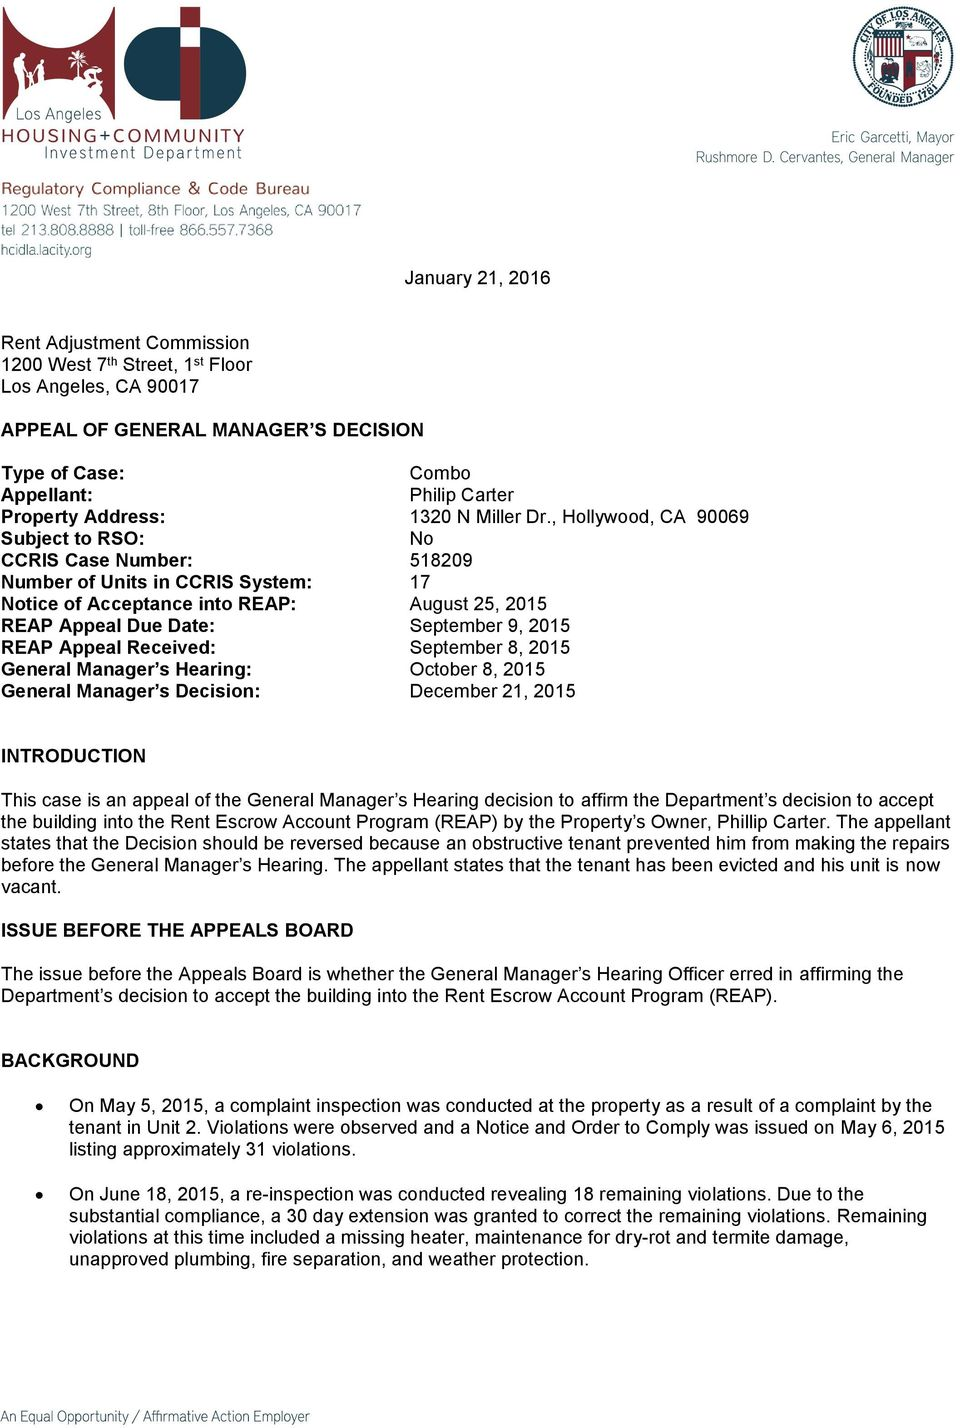 , Hollywood, CA 90069 Subject to RSO: No CCRIS Case Number: 518209 Number of Units in CCRIS System: 17 Notice of Acceptance into REAP: August 25, 2015 REAP Appeal Due Date: September 9, 2015 REAP